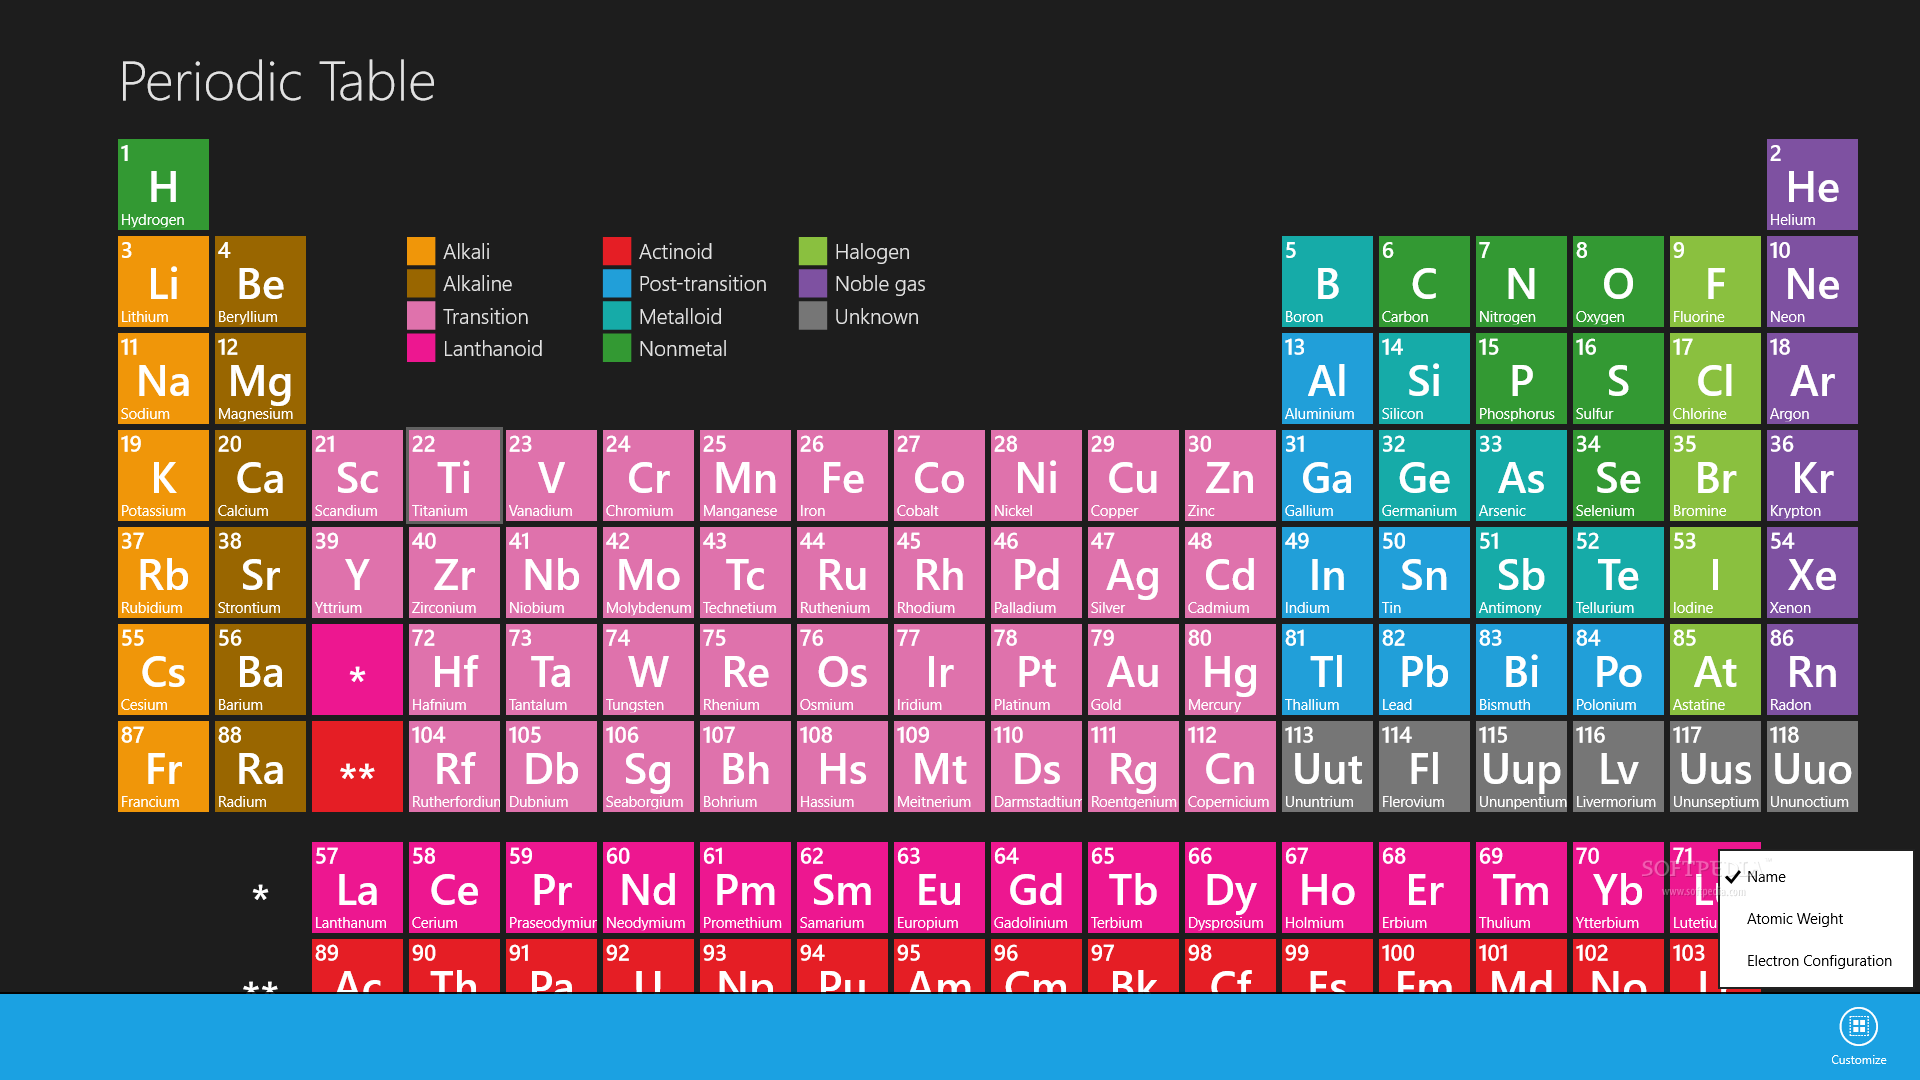 Download periodic table for windows 1081 117039 detailed information periodic table for windows 1081 periodic table for windows 8 allows users to urtaz Gallery